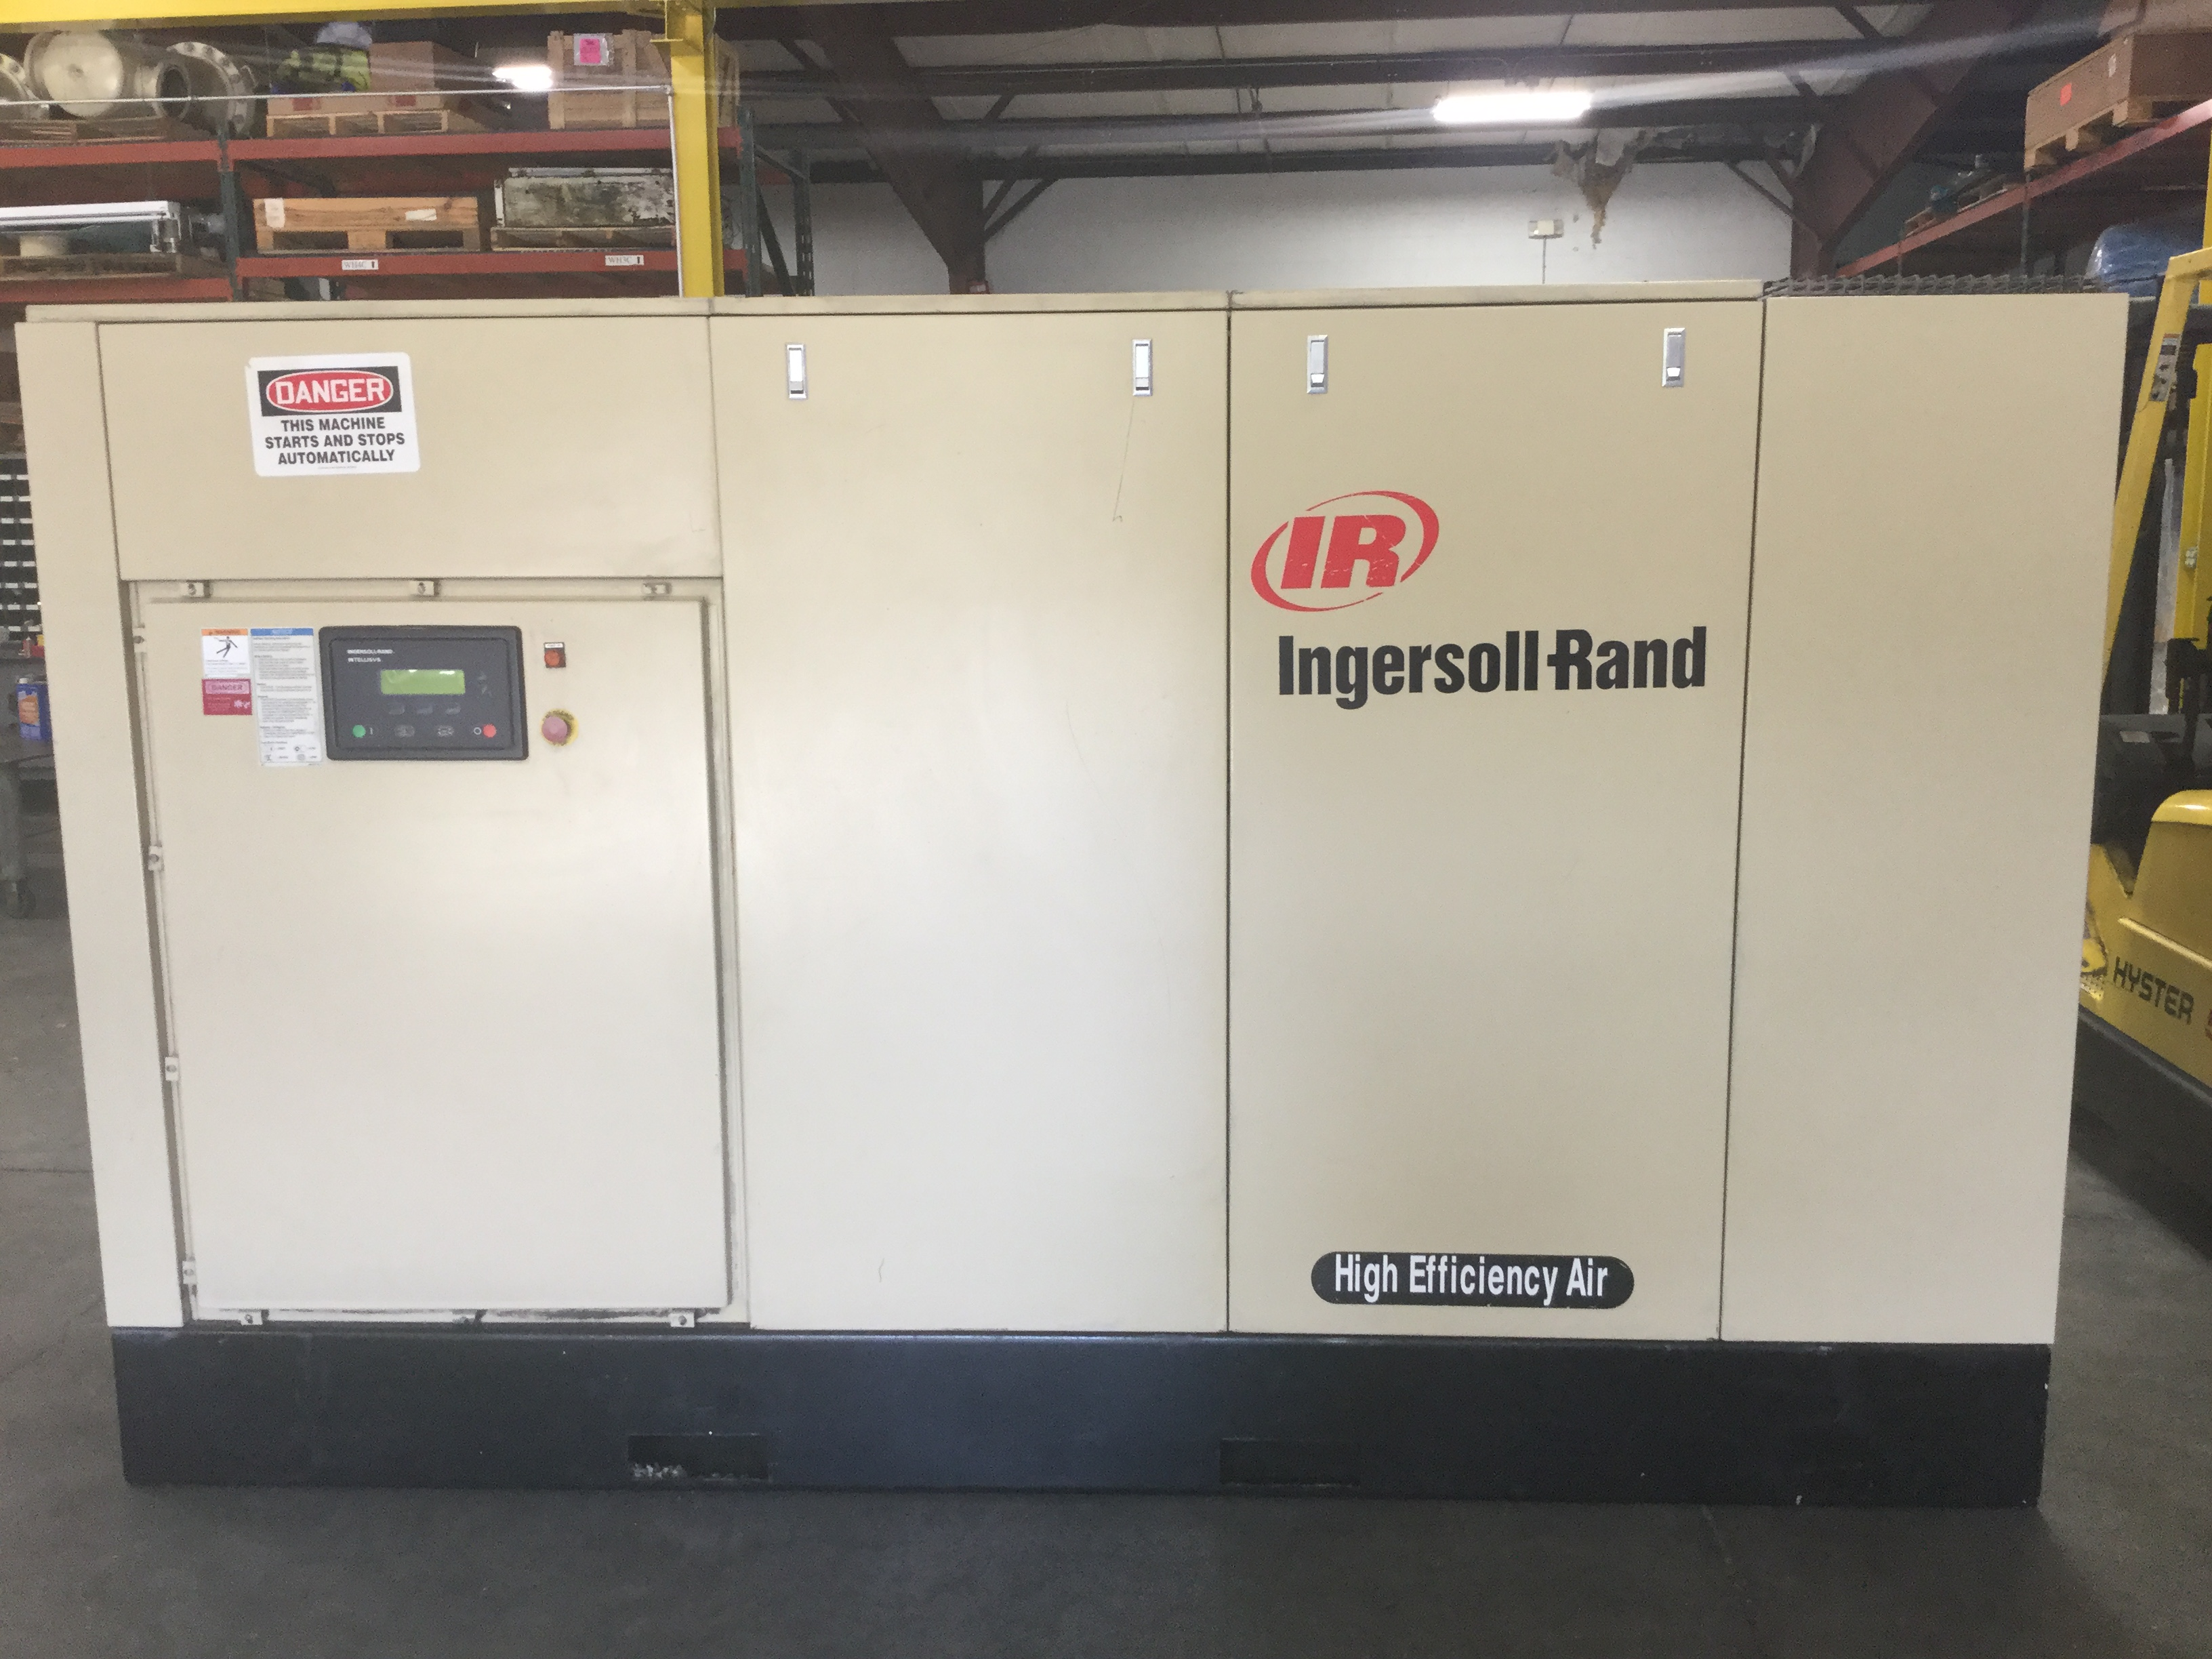 Ingersoll Rand SSR-EPE200-2S